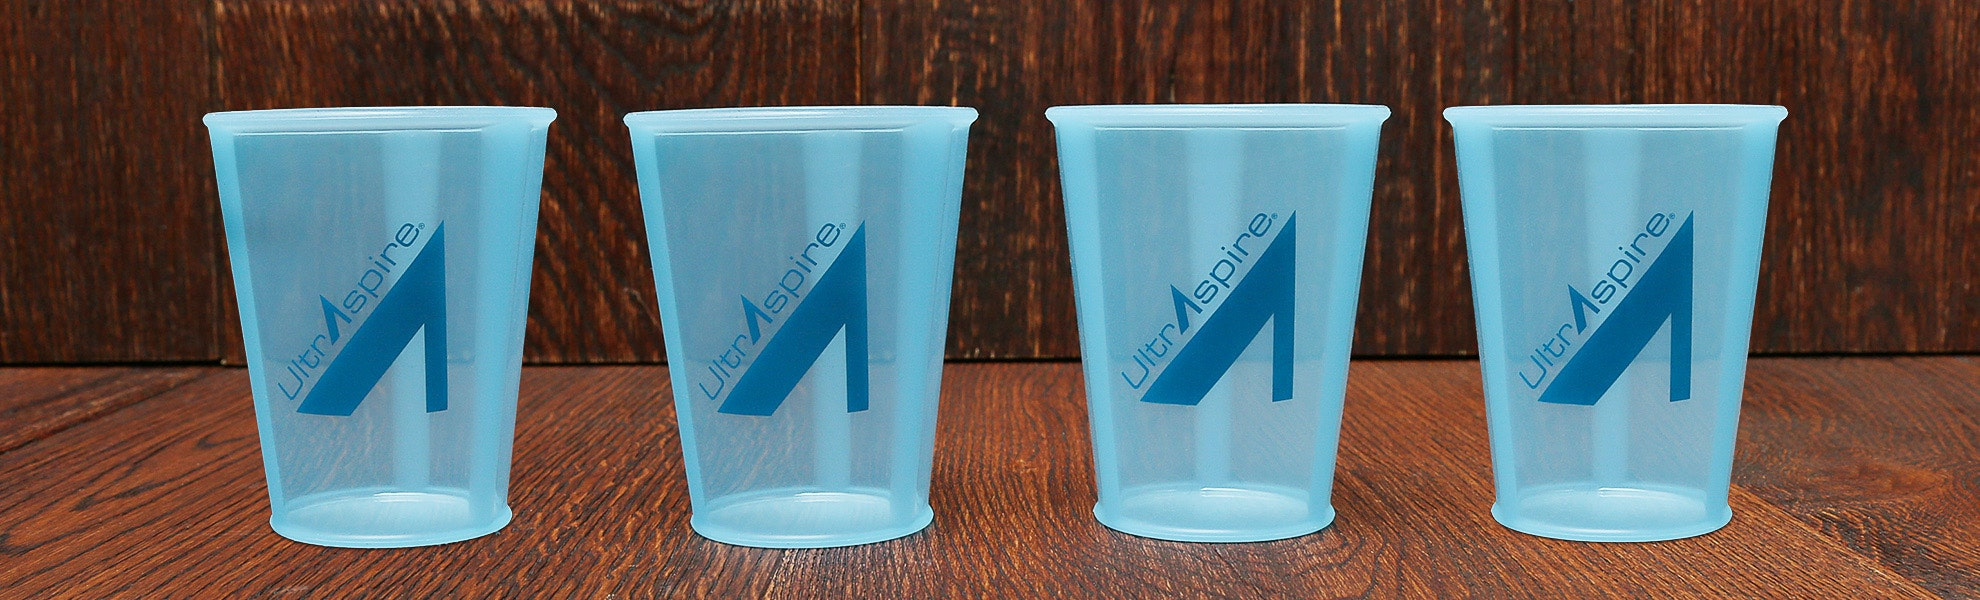 UltrAspire C2 Collapsible Cup (4-Pack)